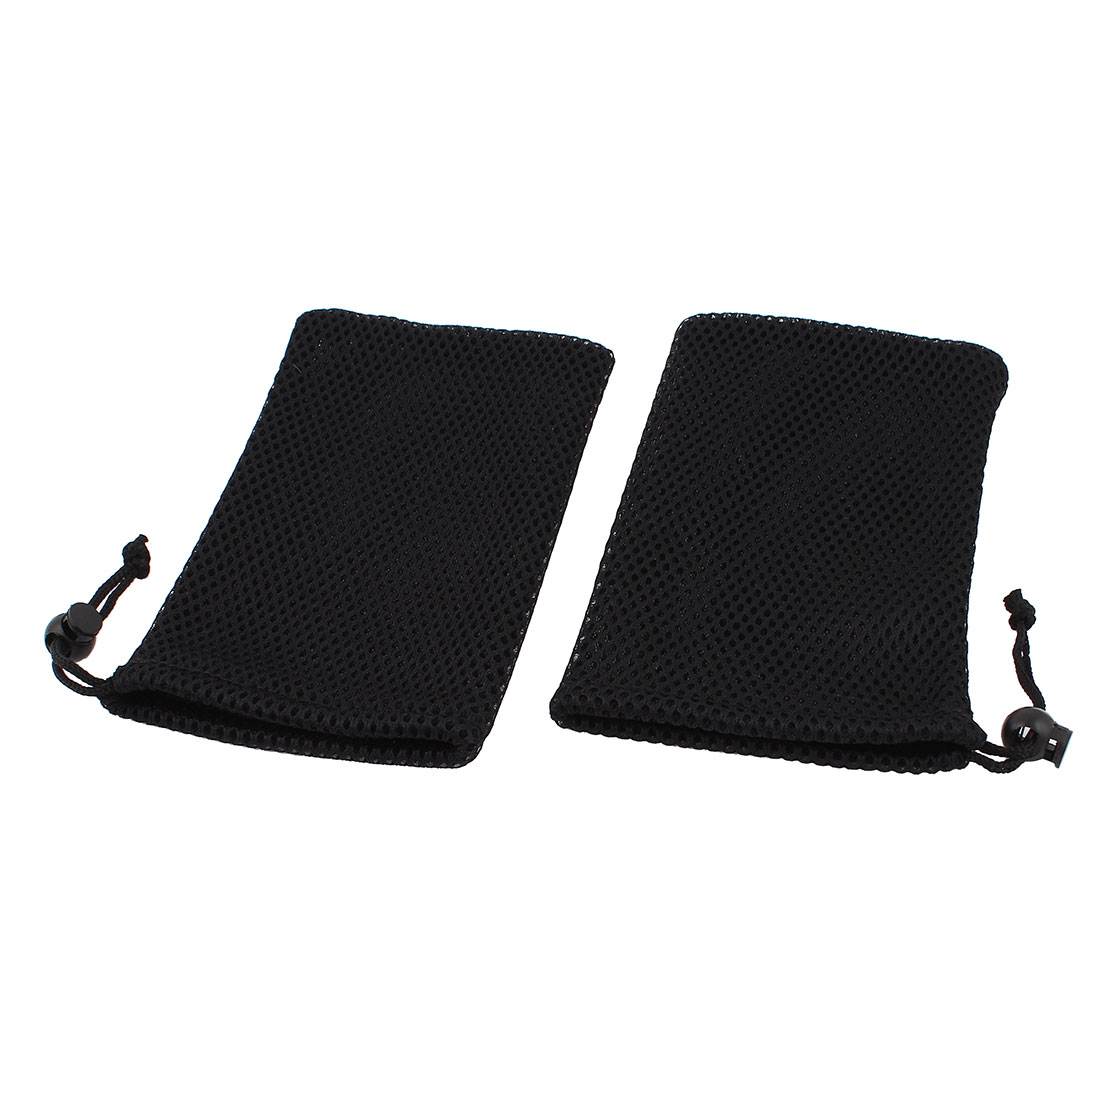 2 Pieces Mesh Mp3 Mp4 Cell Phone Mobilephone Pouch Bag Black